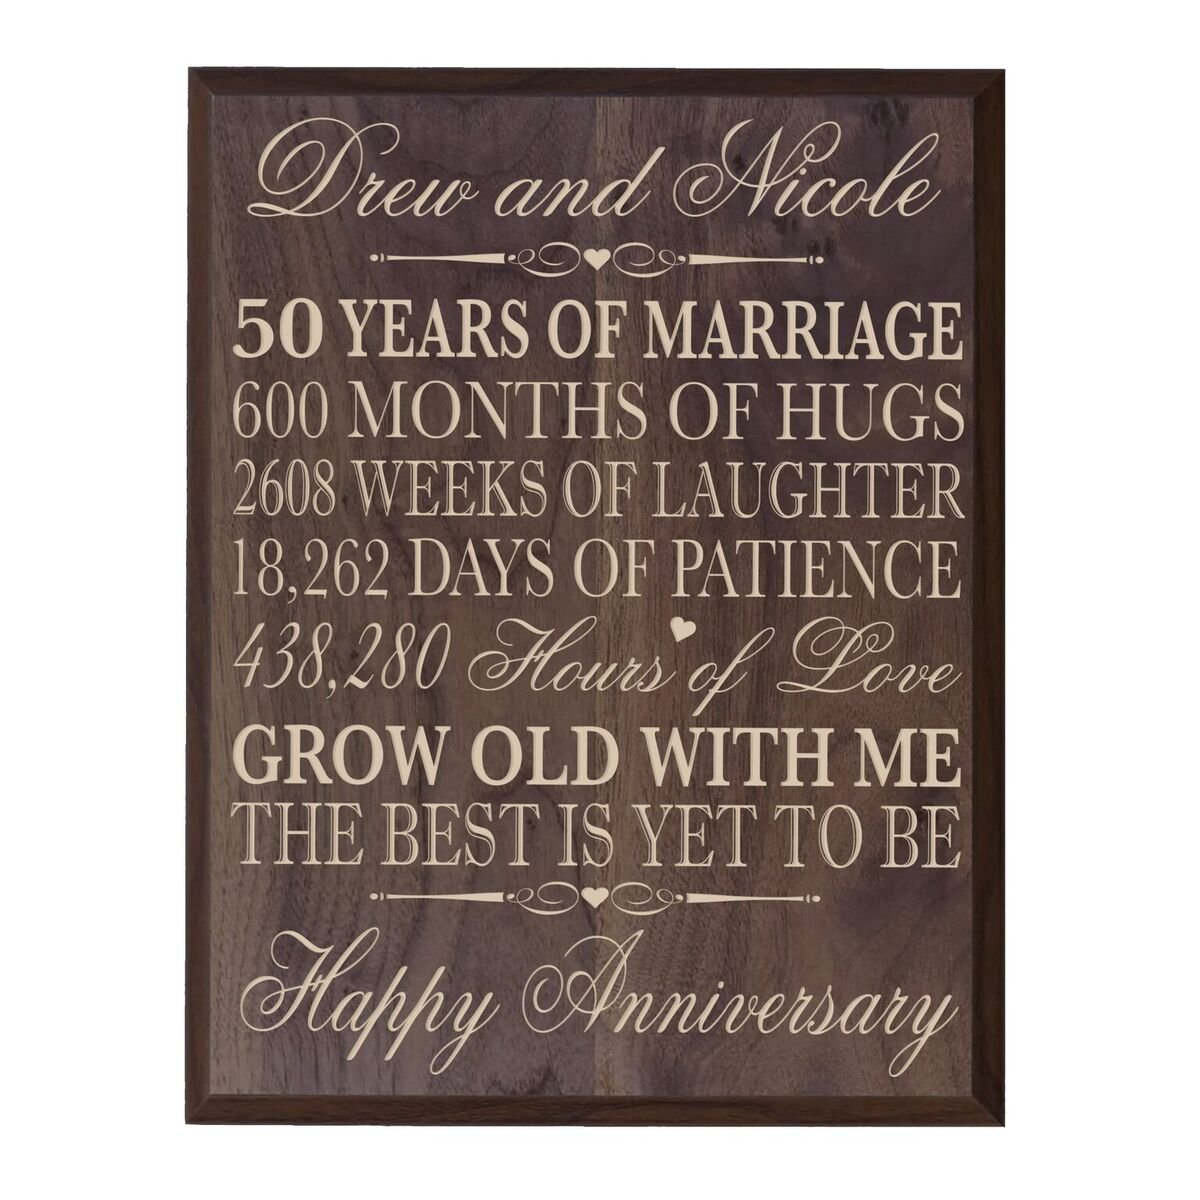 Personalized 50th Wedding Anniversary Wall Plaque Gifts for Couple, Custom Made 50th Anniversary Gifts for Her,50th Wedding Anniversary Gifts for Him 12'' W X 15'' H Wall Plaque (Grand Walnut)